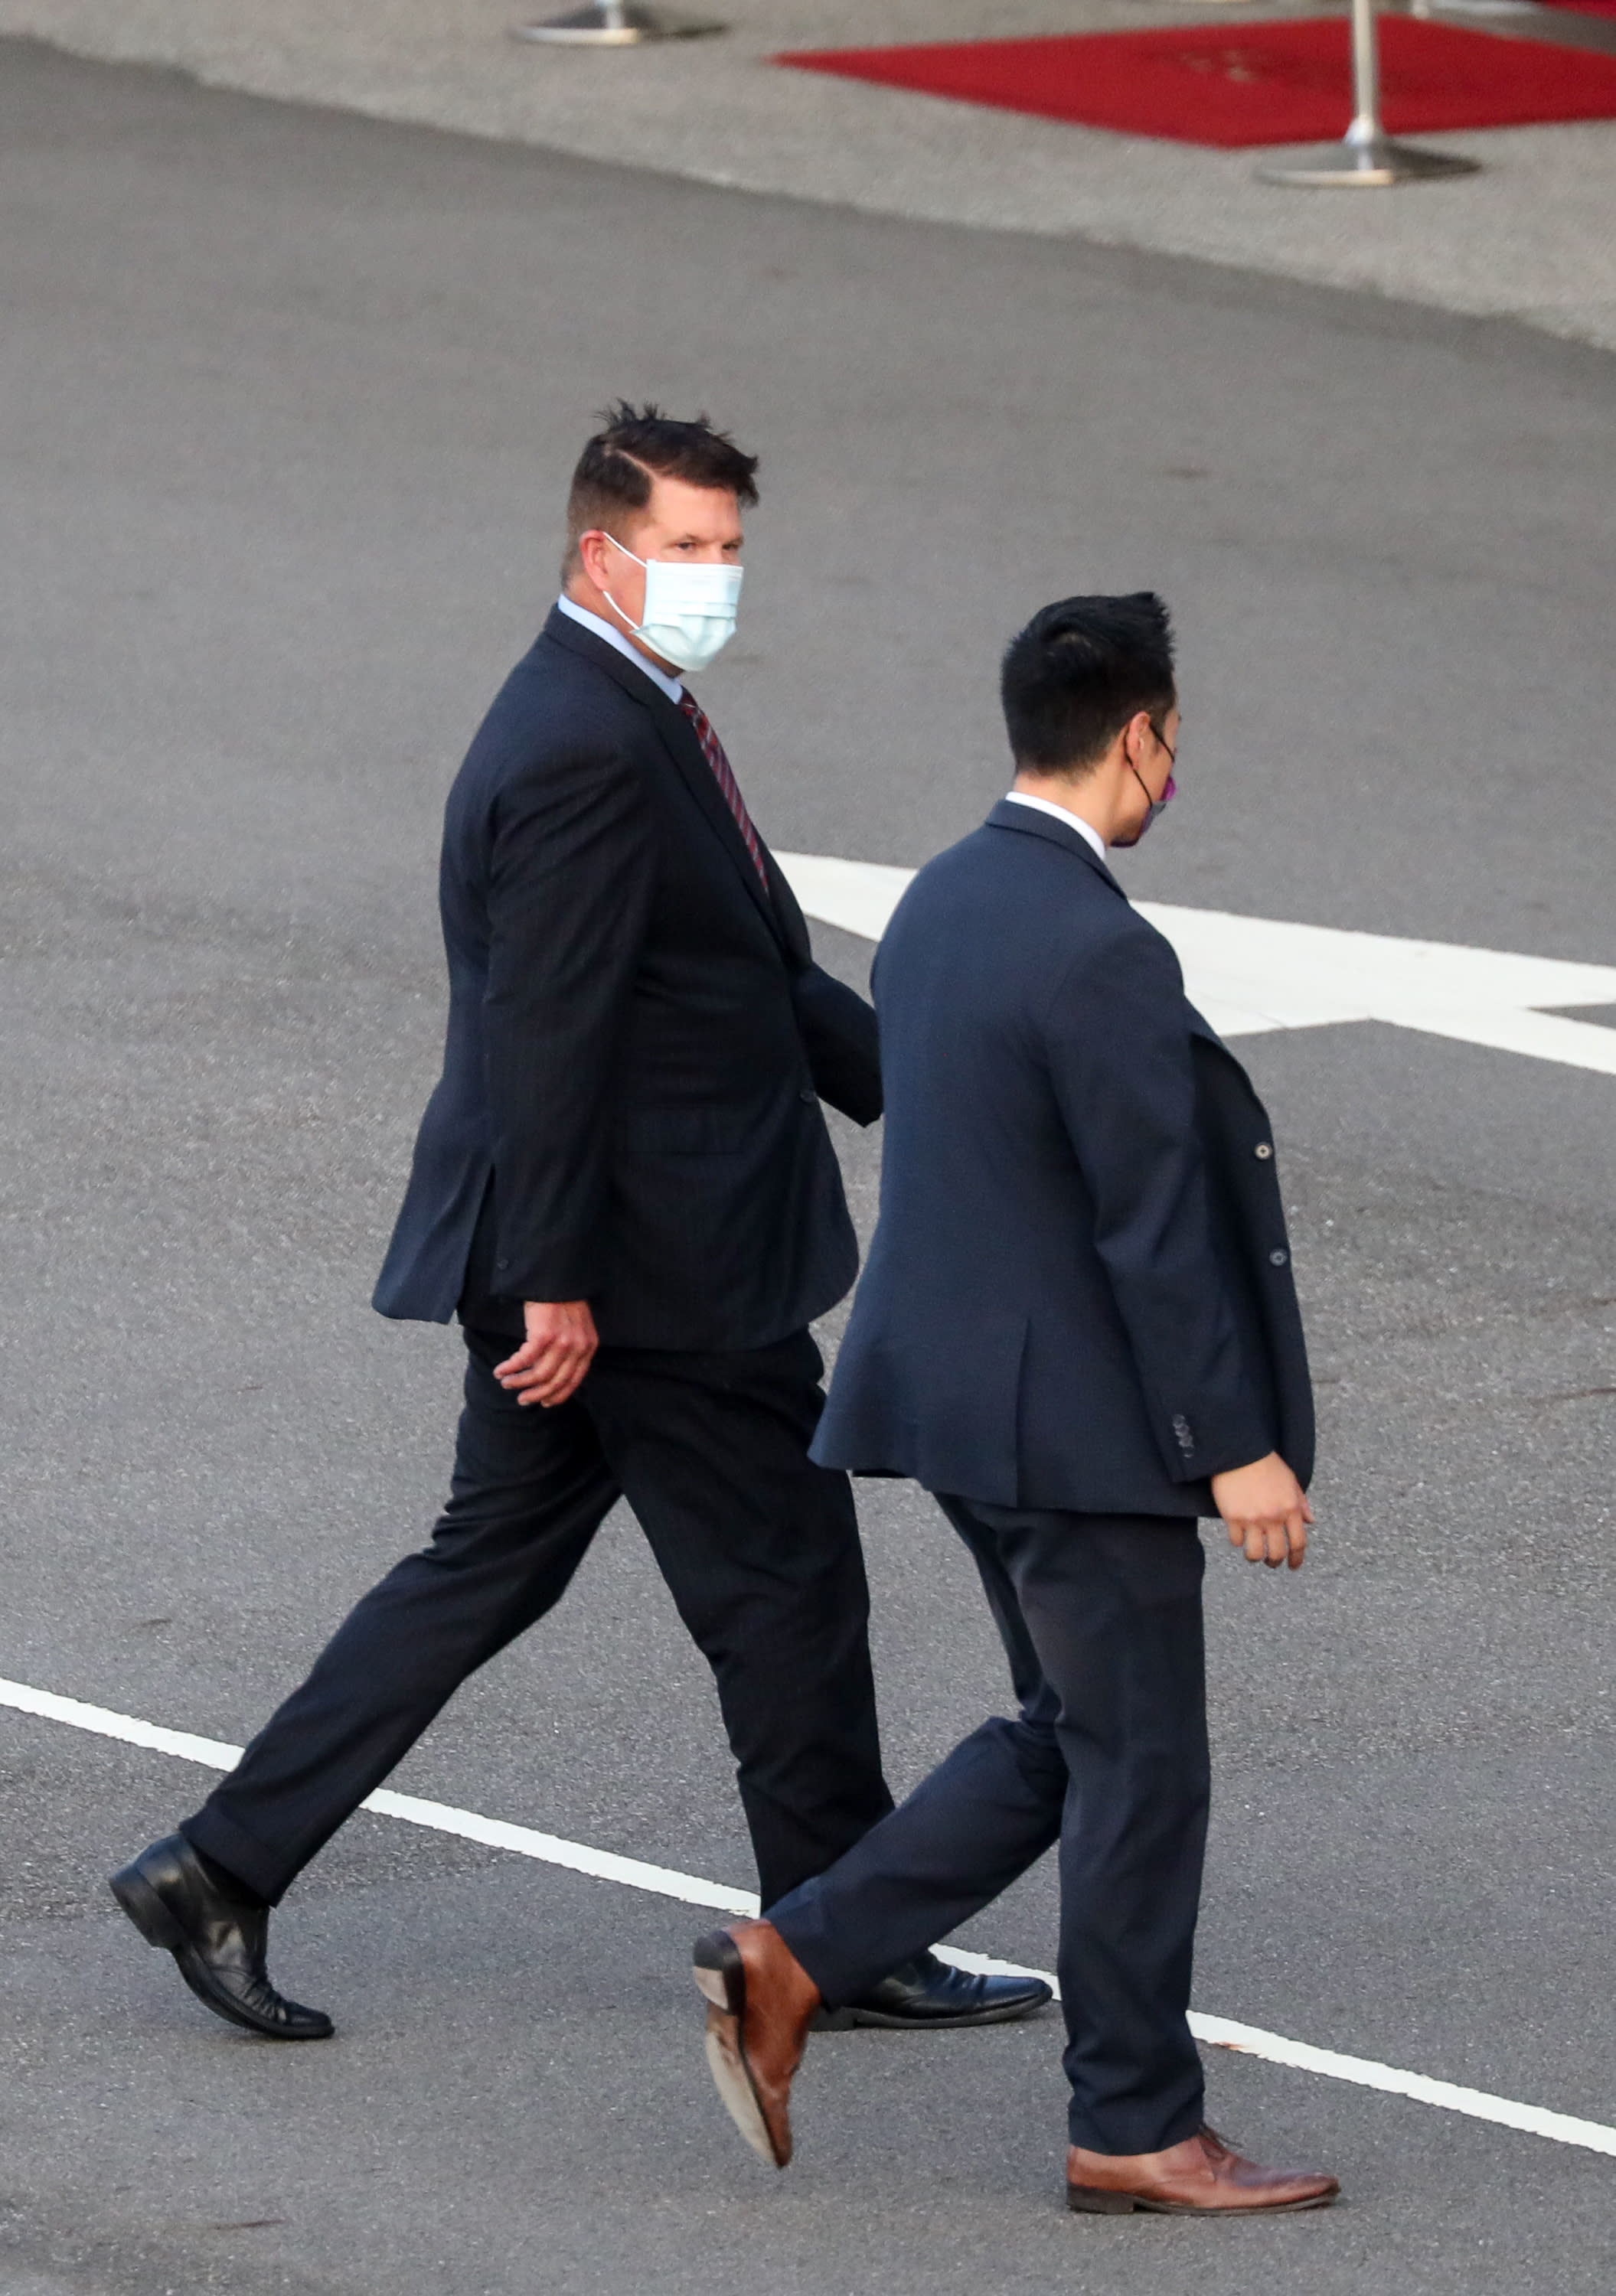 FILE - In this file photo taken Thursday, Sept. 17, 2020, U.S. Undersecretary of State Keith Krach, walks away after disembarking from a plane upon arrival at an airforce base in Taipei. Taiwan. The second U.S. high level envoy to visit Taiwan in two months began a day of closed-door meetings Friday, as China conducted military drills near the Taiwan Strait after threatening retaliation. (Pool Photo via AP Photo, File)